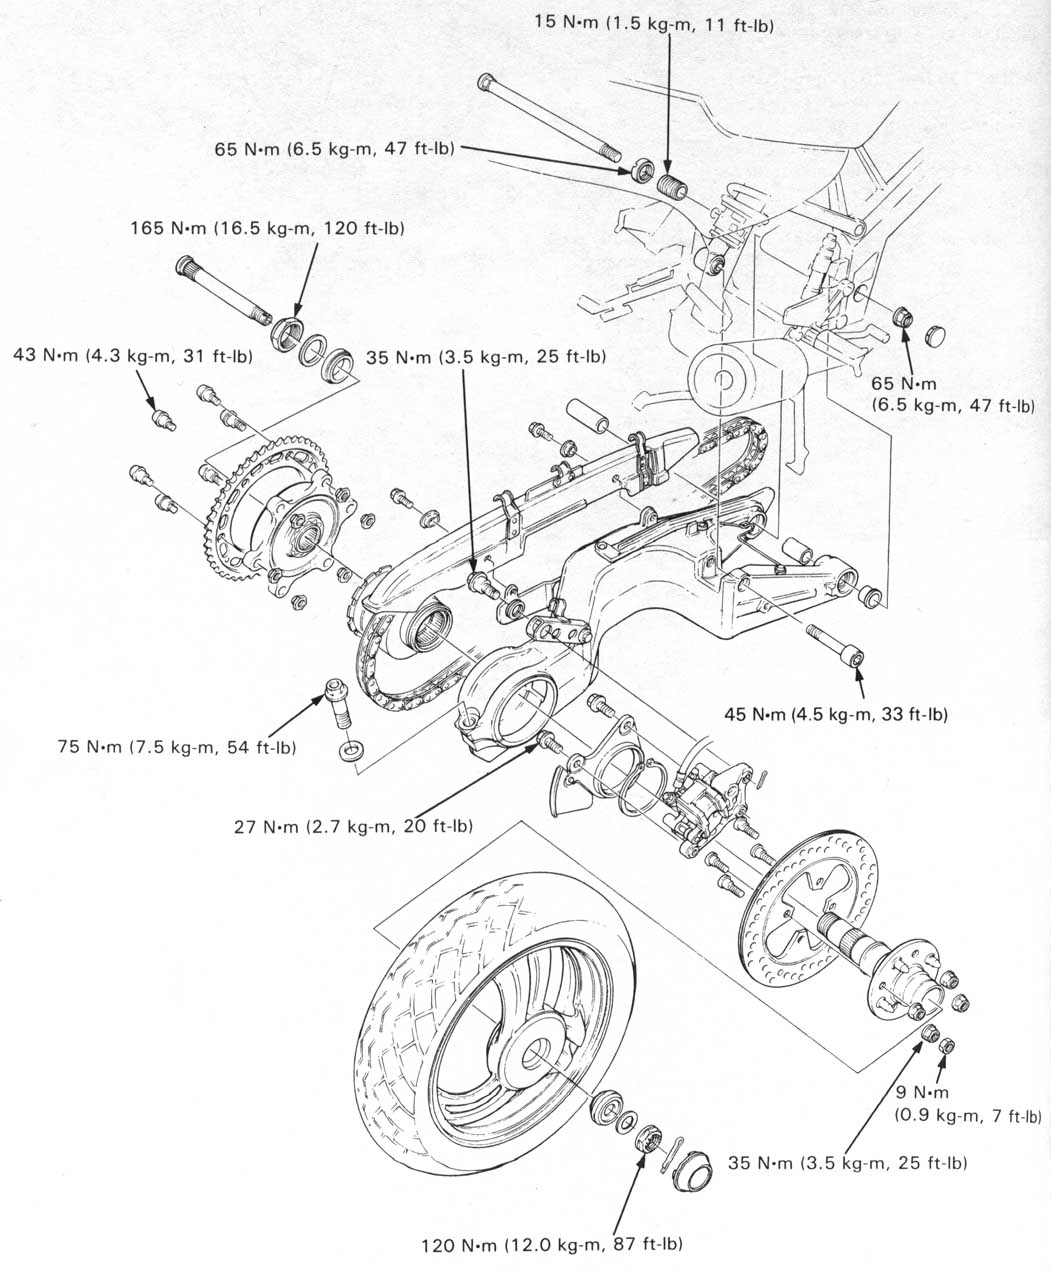 Honda Nt650 Service Manual Section 13 Rear Wheel Suspension